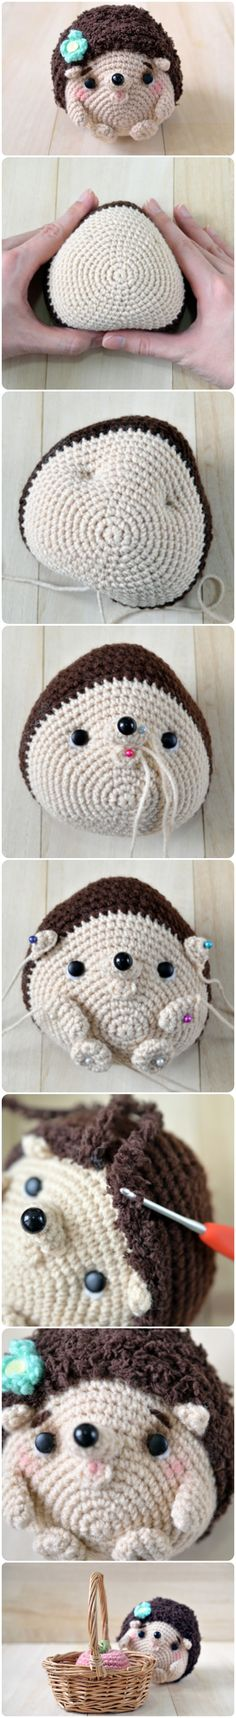 Knit Hedgehogs with Free Pattern -